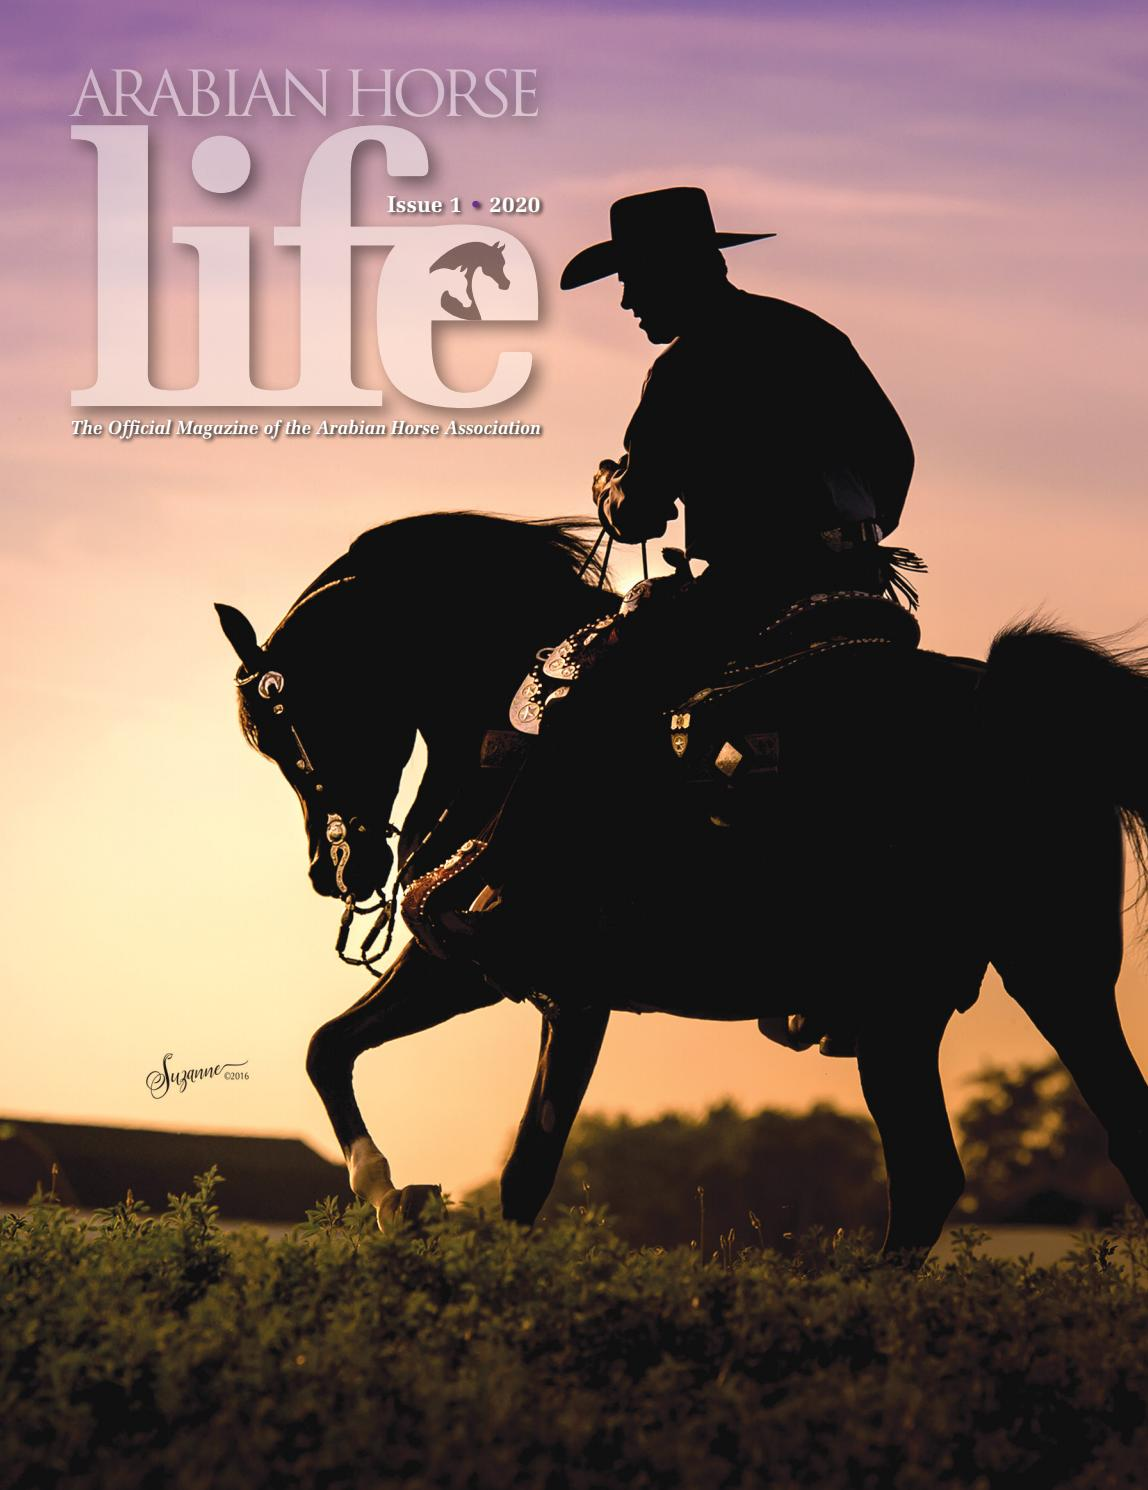 Arabian Horse Life Magazine Issue 1 2020 By Arabian Horse Association Issuu